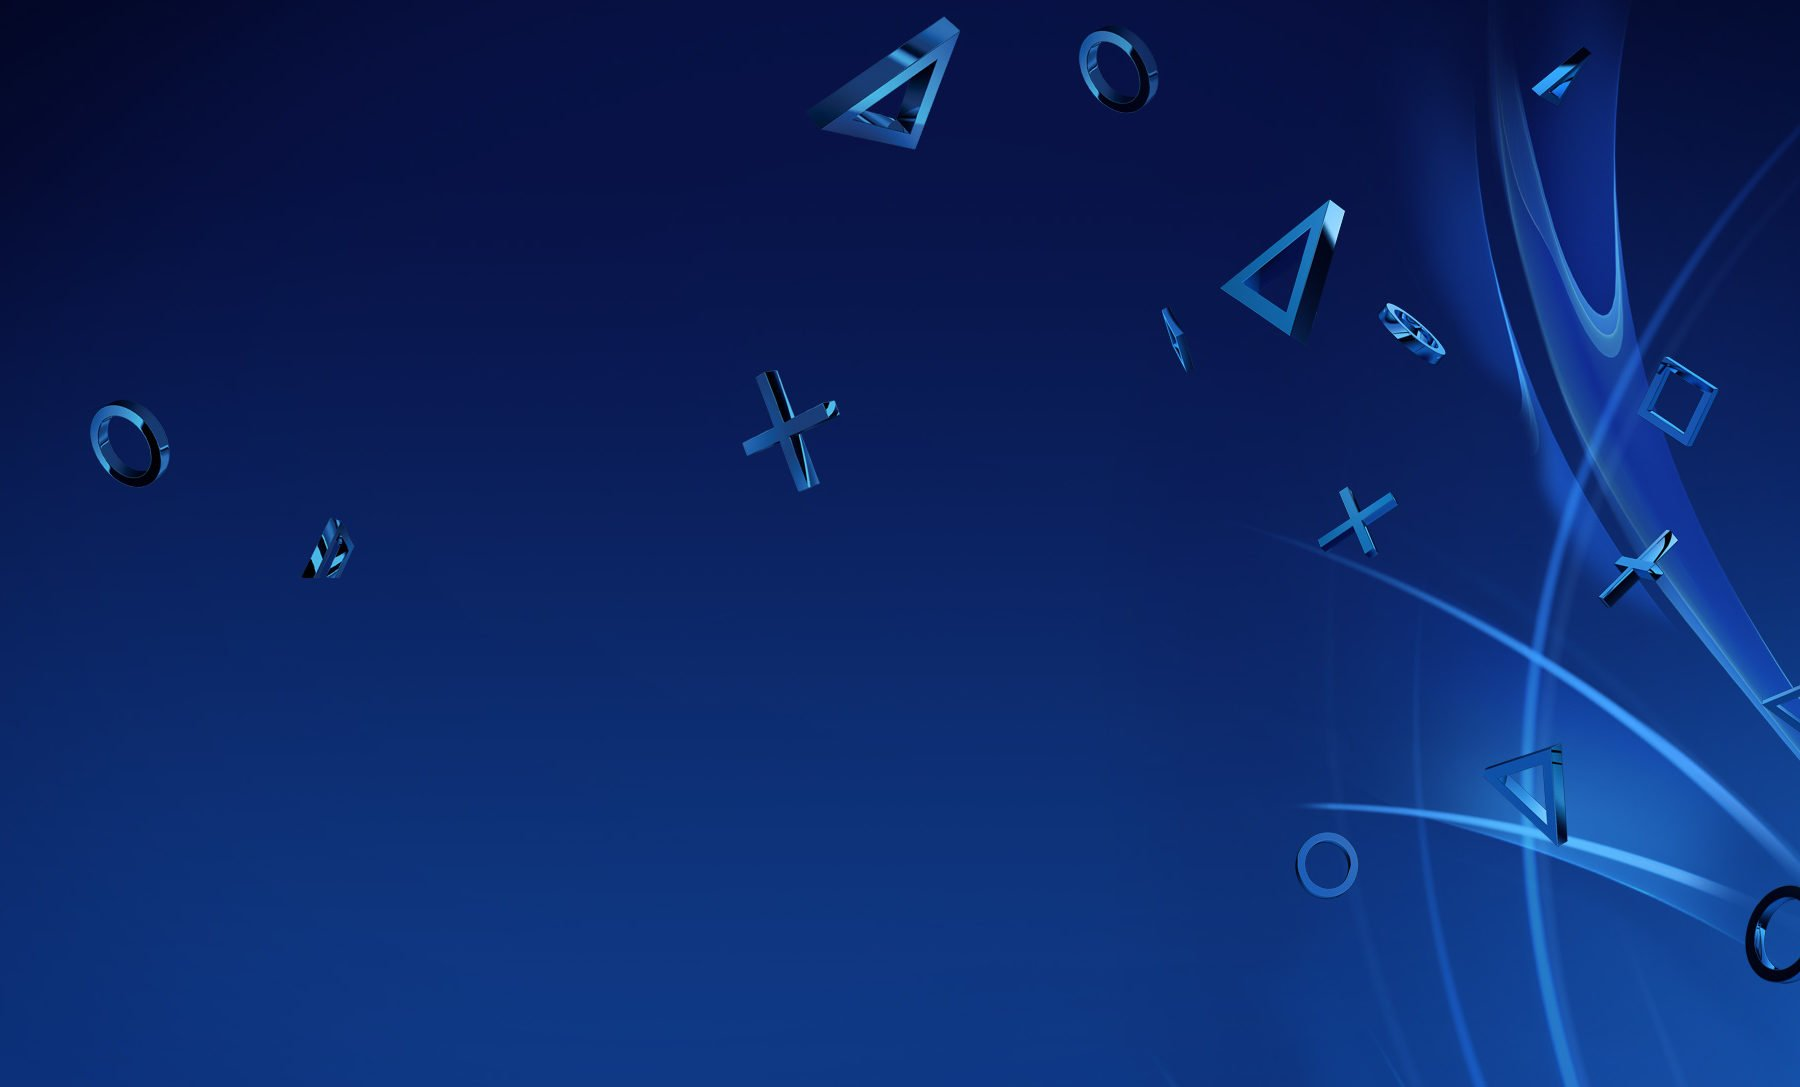 The Ps5 Event Is Rescheduled For This Thursday